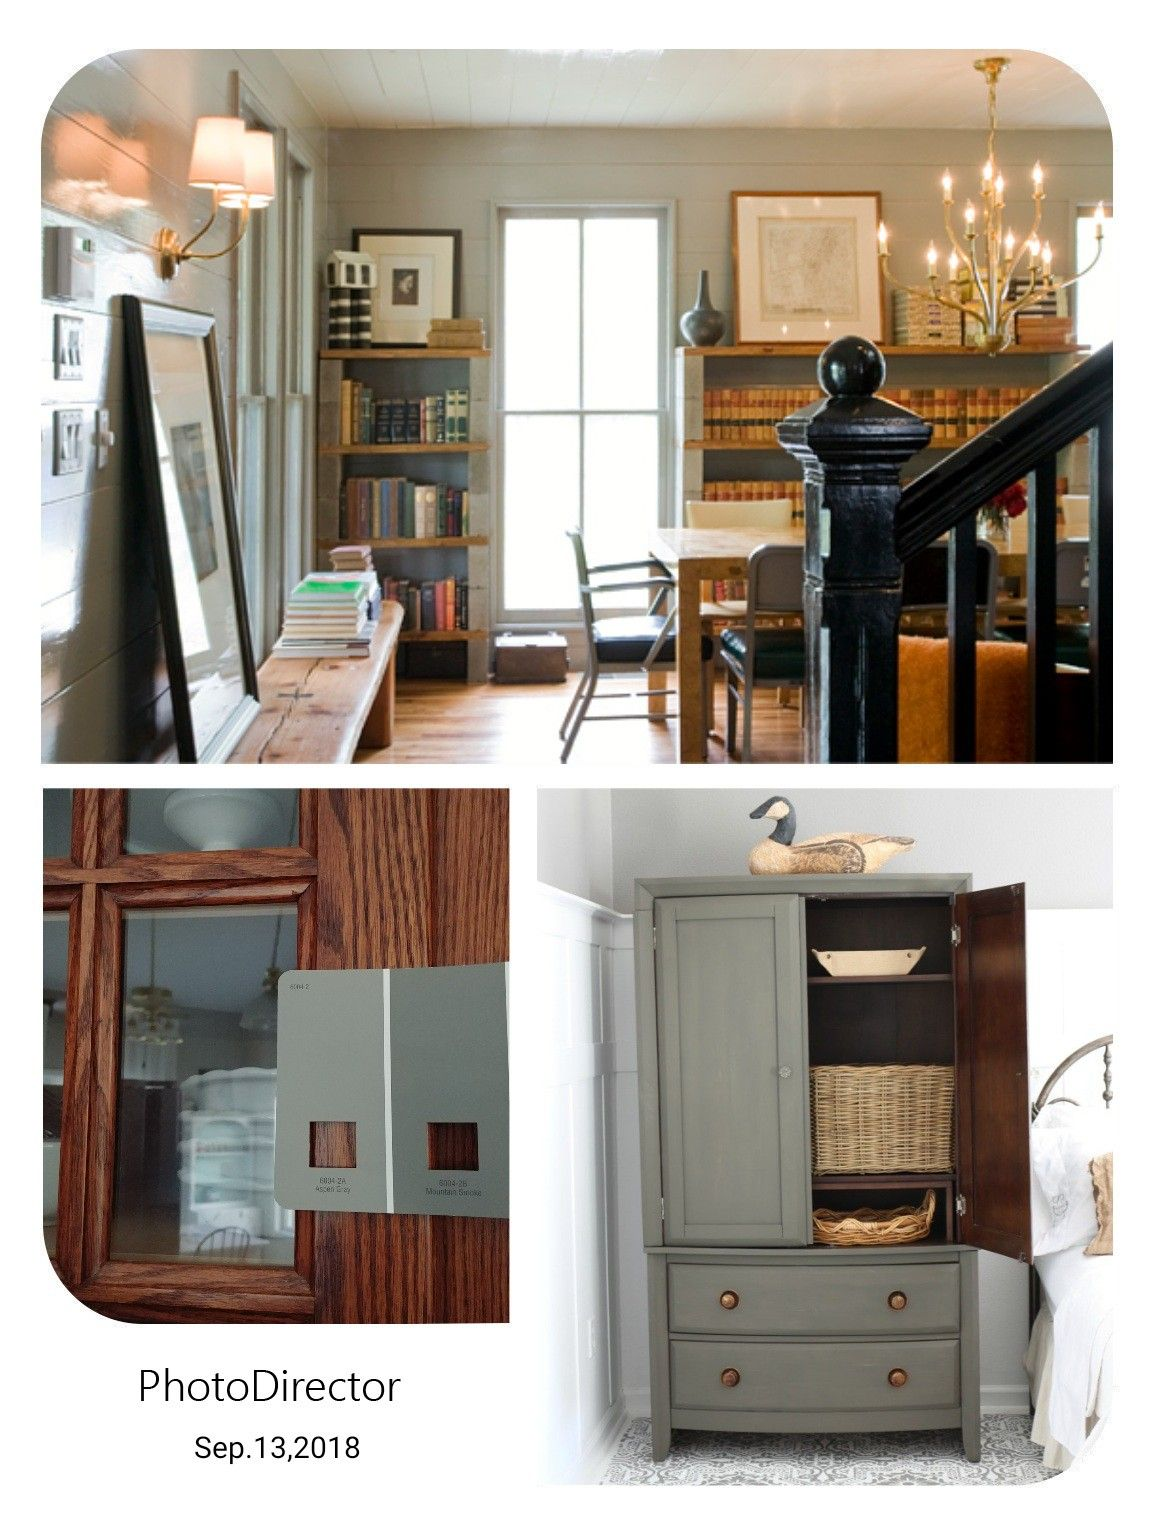 Valspar Aspen Gray Color Inspirations For My Kitchen Cabinets Home Home Decor Kitchen Cabinets